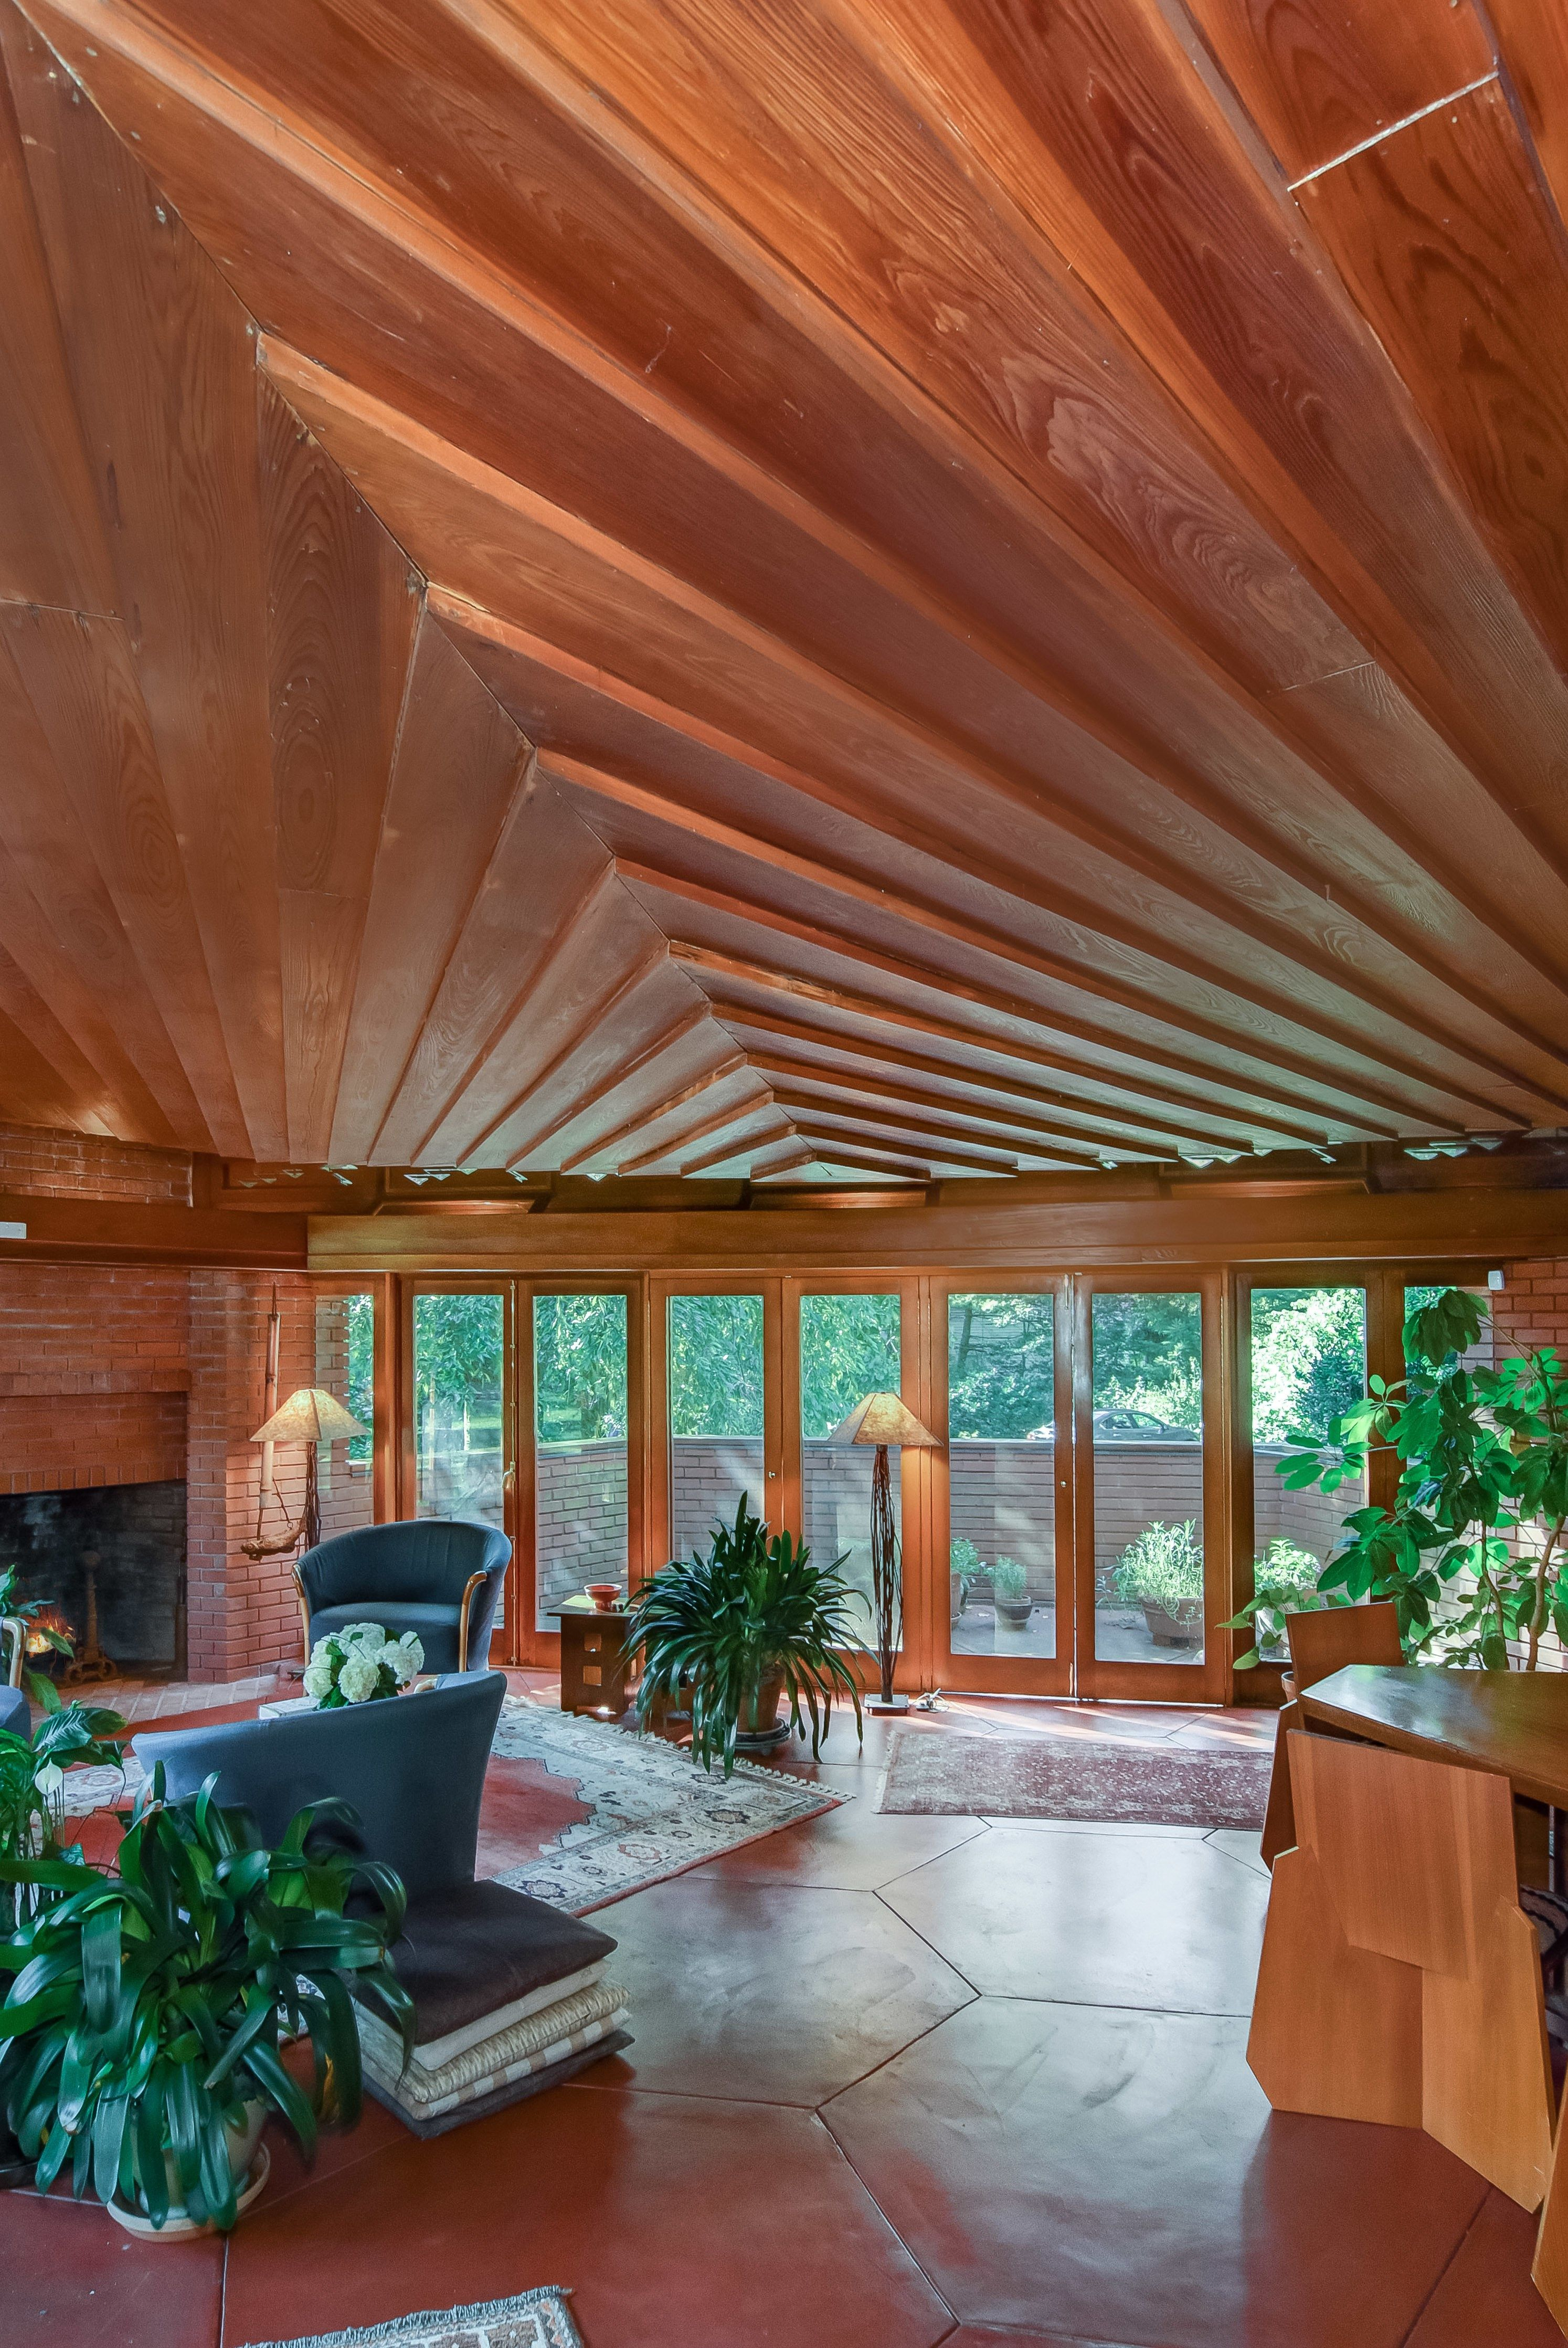 Frank Lloyd Wright Hexagonal Home Up For Sale In New Jersey Usonian House Frank Lloyd Wright Usonian Frank Lloyd Wright Architecture